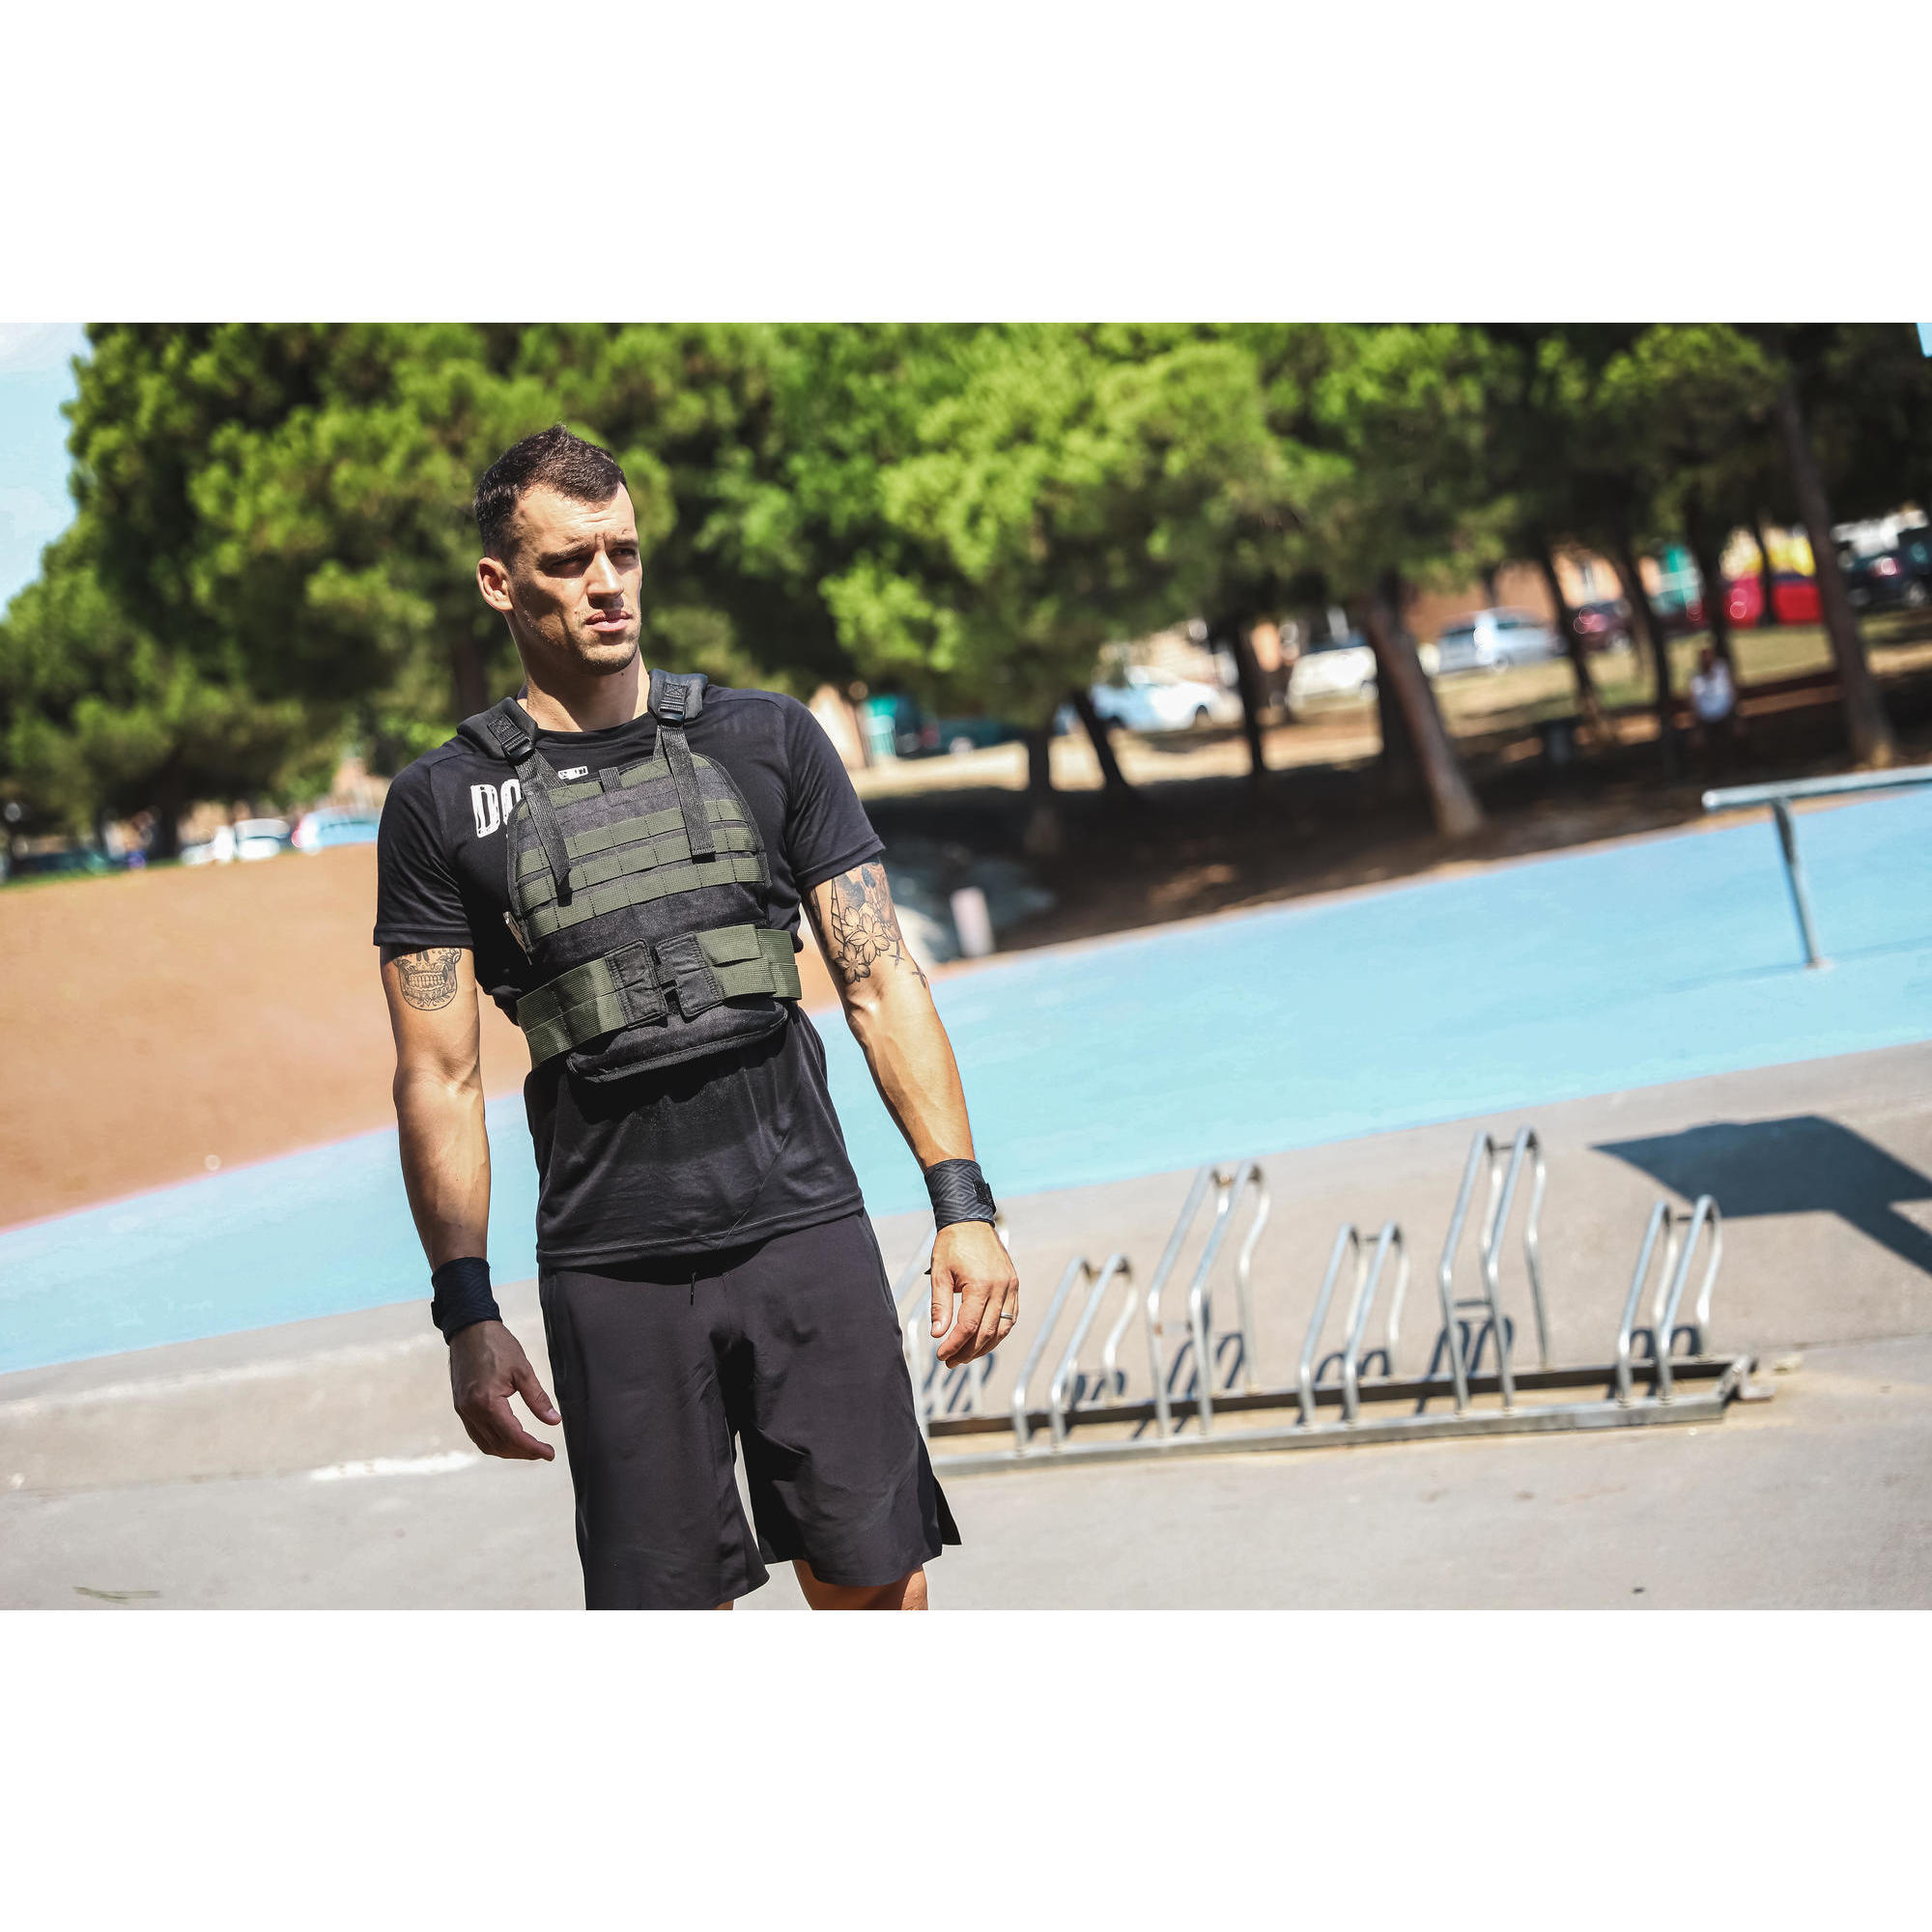 Domyos 10 KG Weighted Vest Gym Resistance Training Strength Fitness BRAND NEW